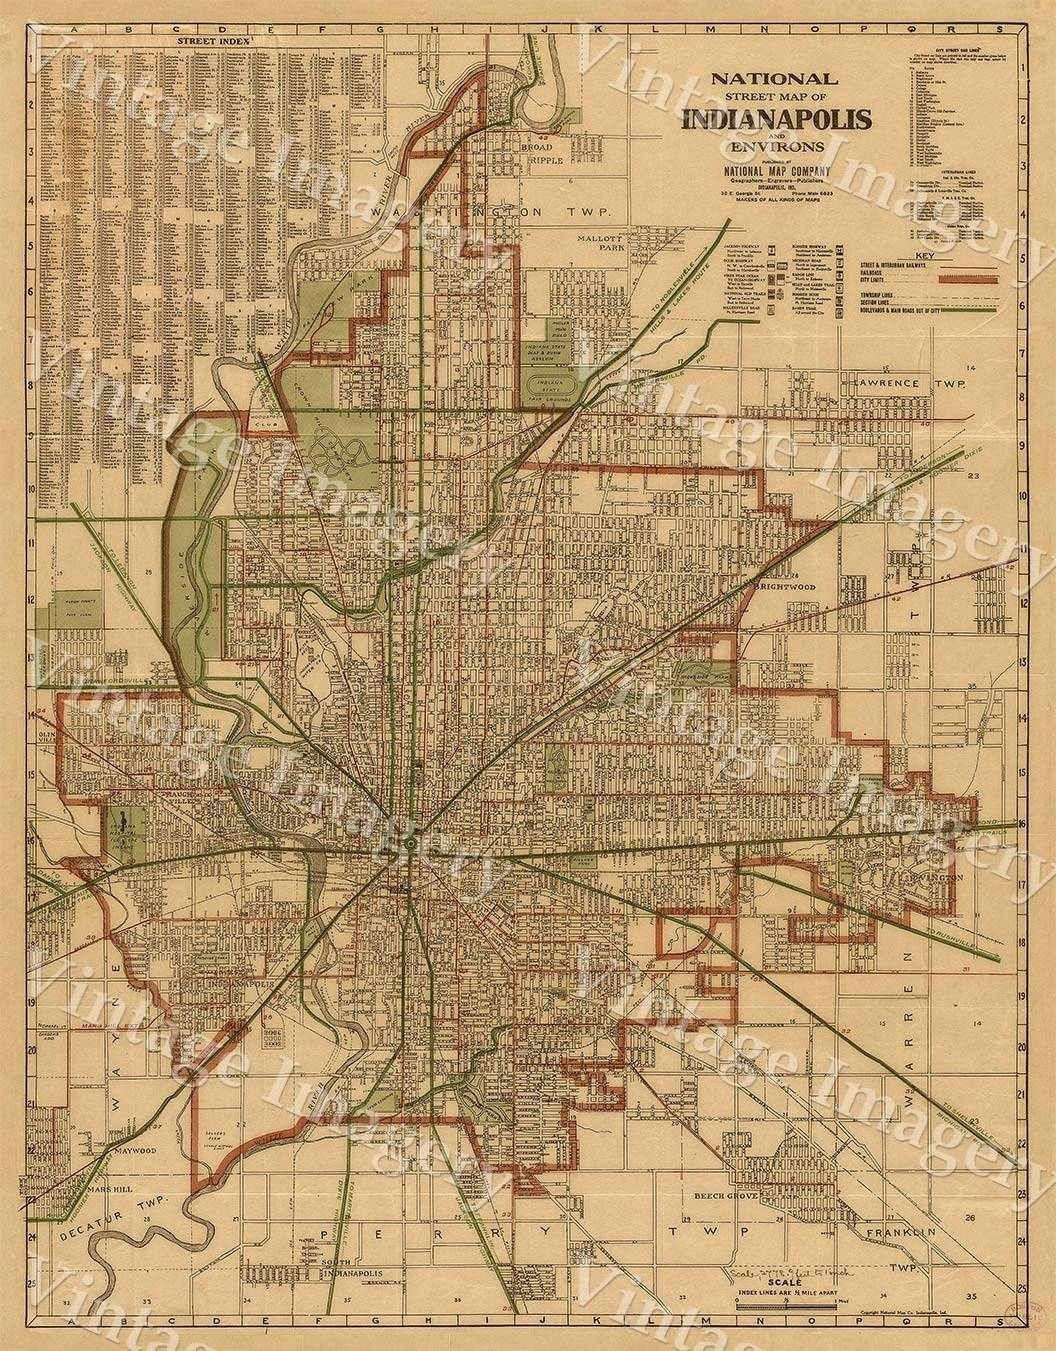 Indianapolis Map 1921 Old Antique Restoration Hardware Style In Latest Street Map Wall Art (Gallery 17 of 20)